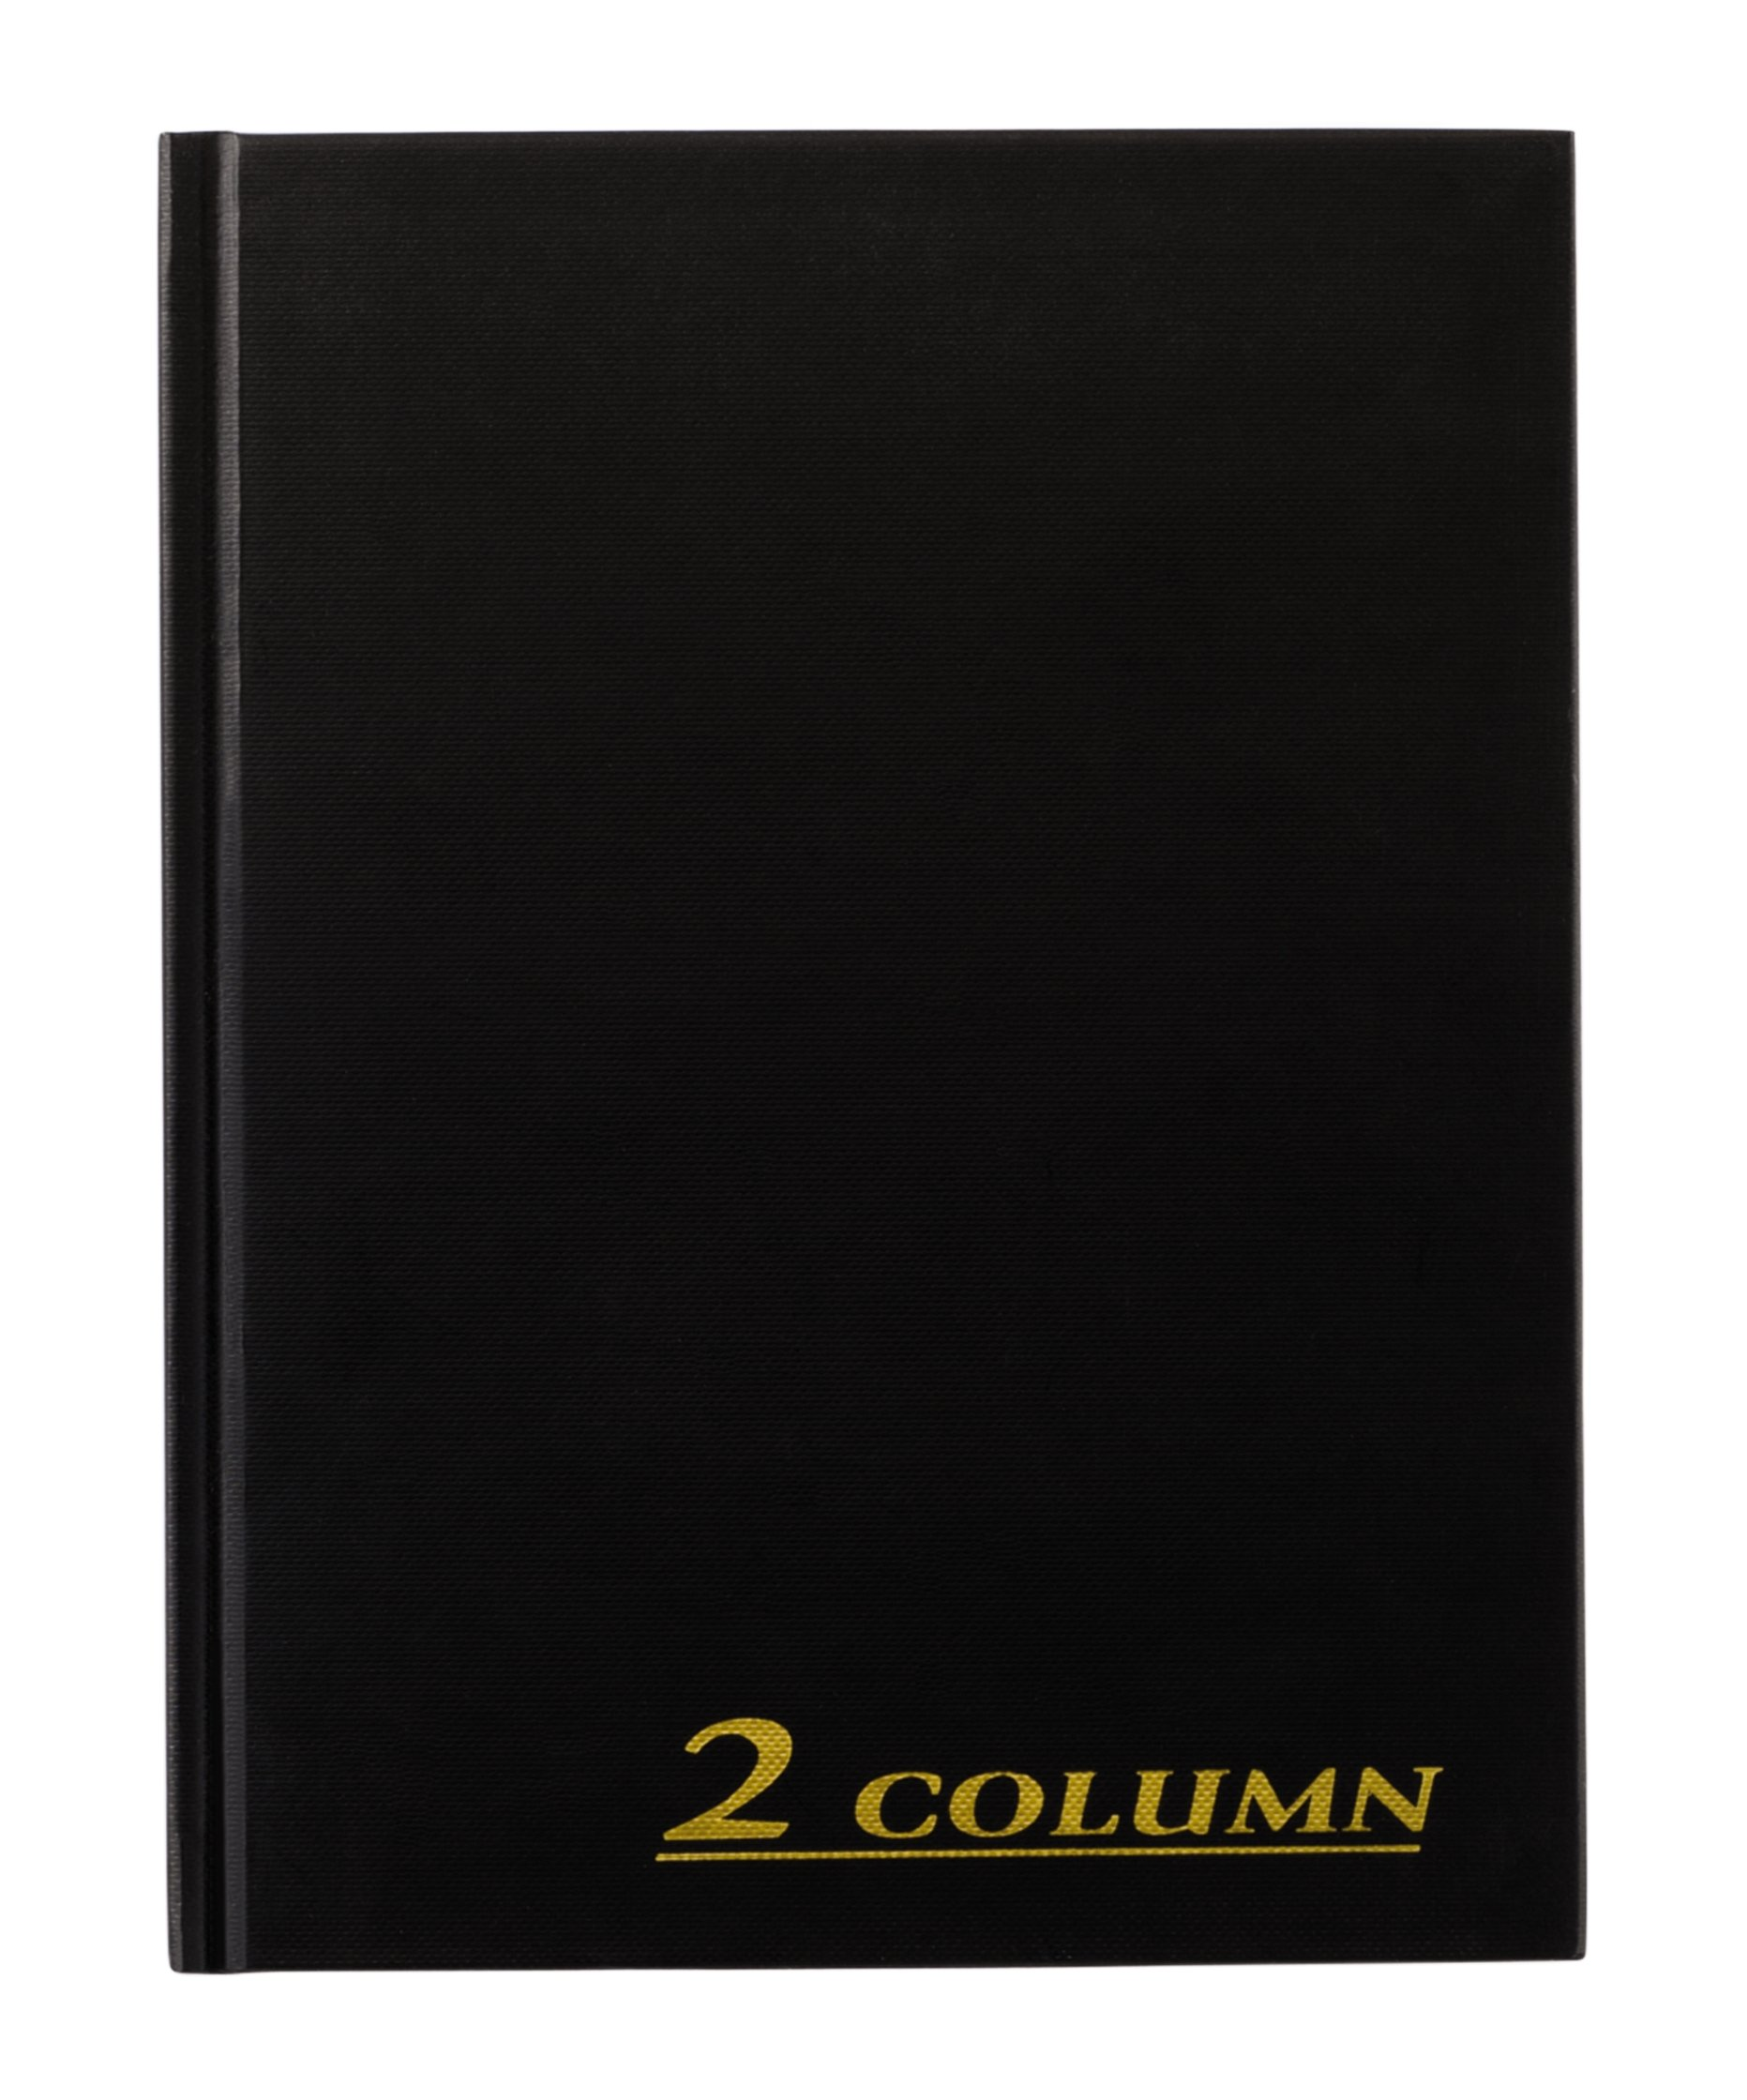 Adams Account Book, 2-Column, Black Cloth Cover, 9.25 x 7 Inches, 80 Pages per Book (ARB8002M)